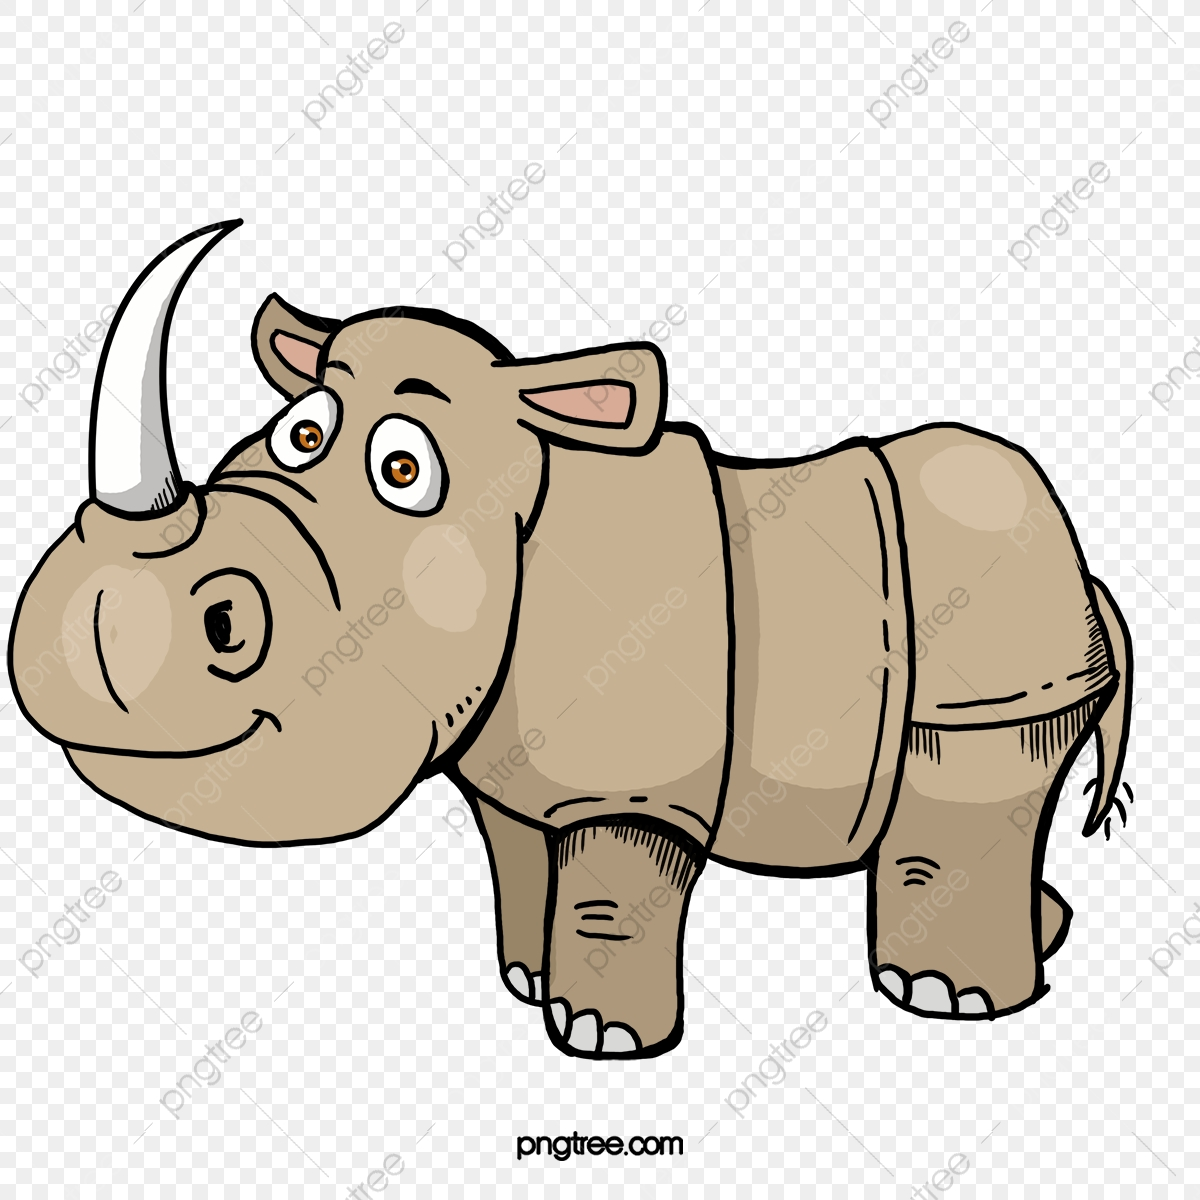 Cute Rhino, Cute Clipart, Rhino Clipart, Rhinoceros PNG